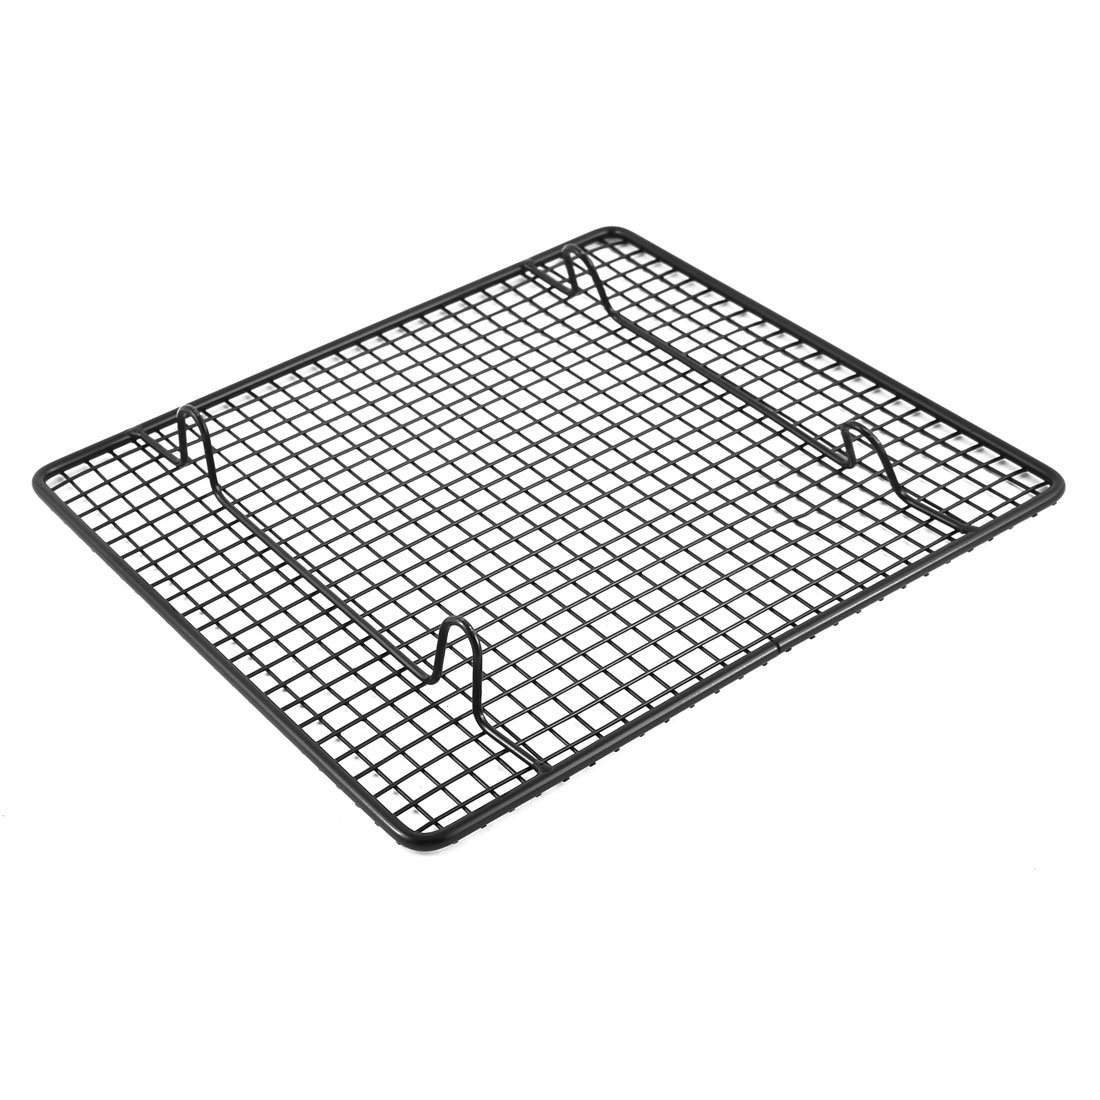 Amazon.com: uxcell Metal Restaurant Kitchen Cake Bread Cookie Pizza Beef Cooling Rack 26 x 23cm Black: Kitchen & Dining